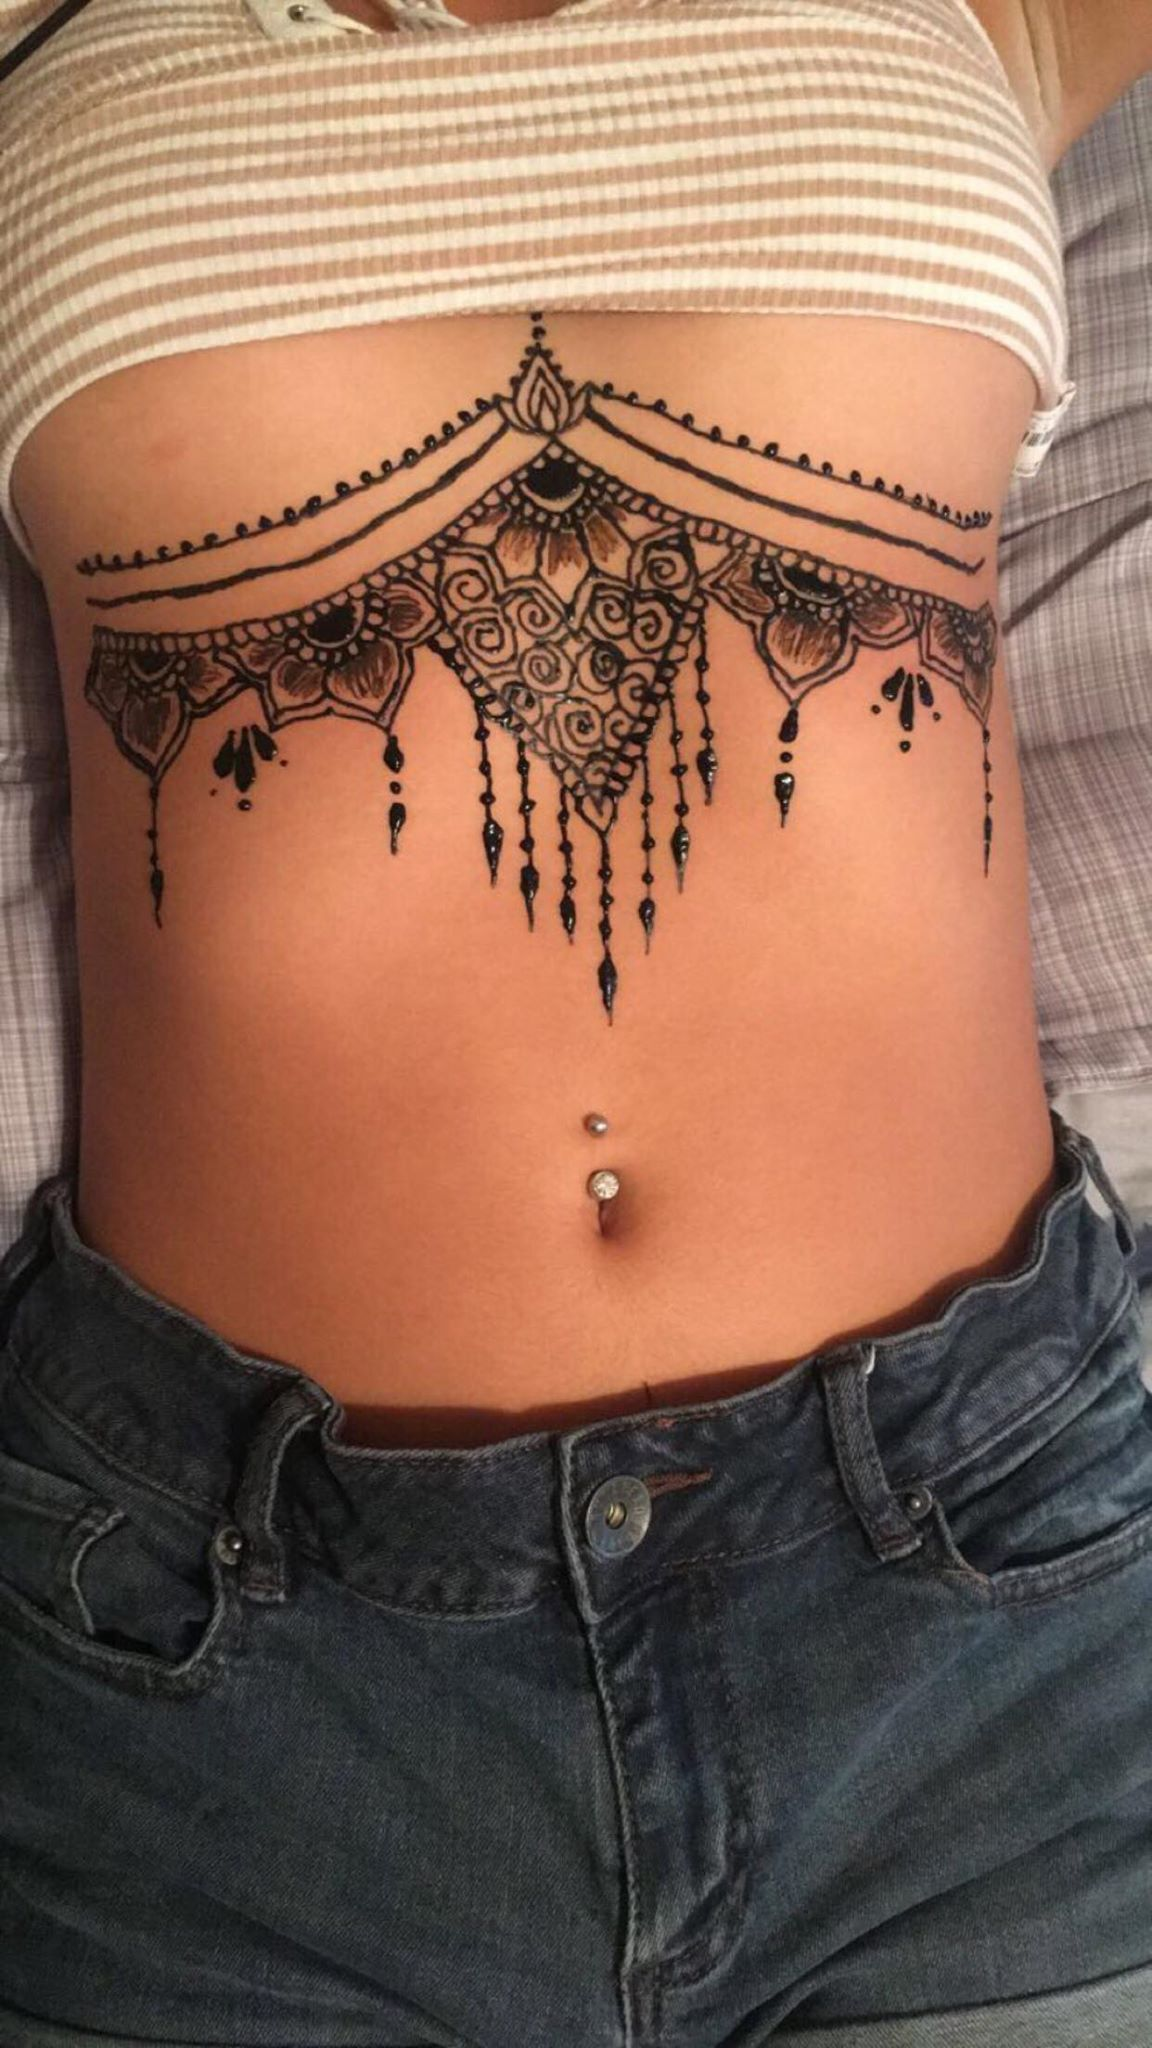 Henna Style Tattoo Designs: Henna Tattoo For Your Next Event